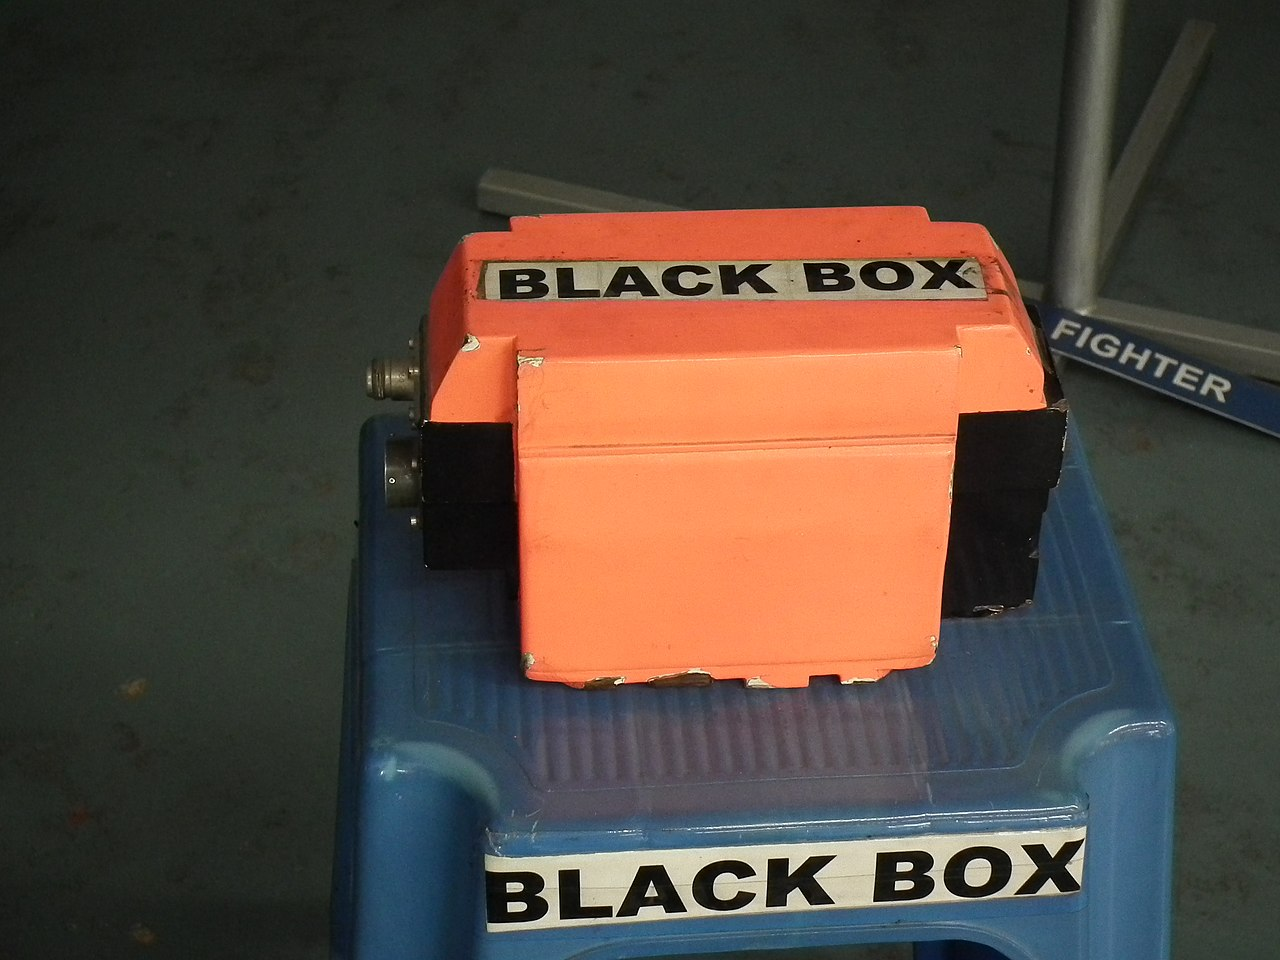 What is Black box?